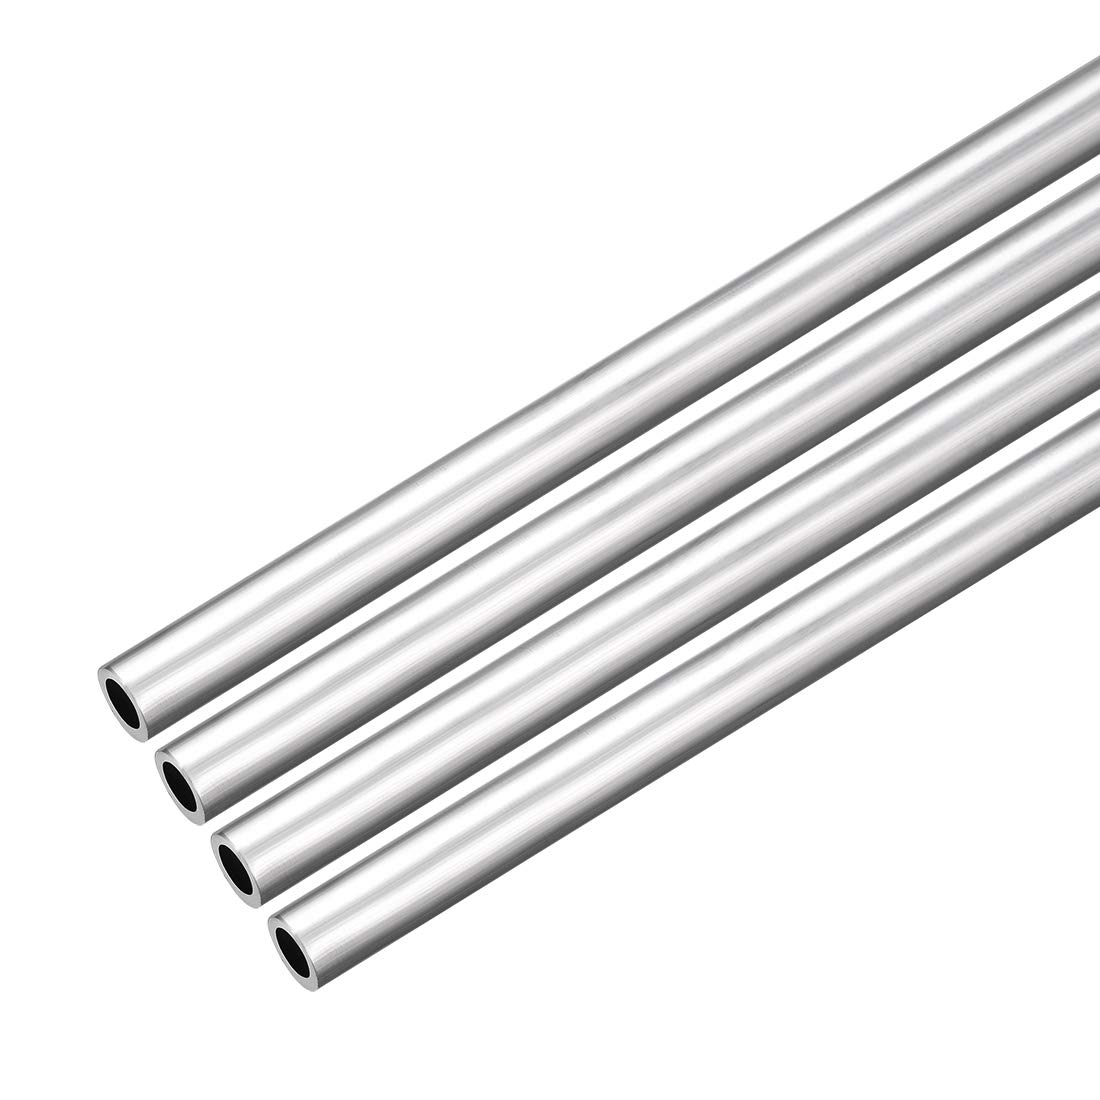 uxcell 4Pcs 6063 Seamless Aluminum Round Straight Tubing Tube 1 Feet Length 0.195 Inches ID 0.273 Inches OD